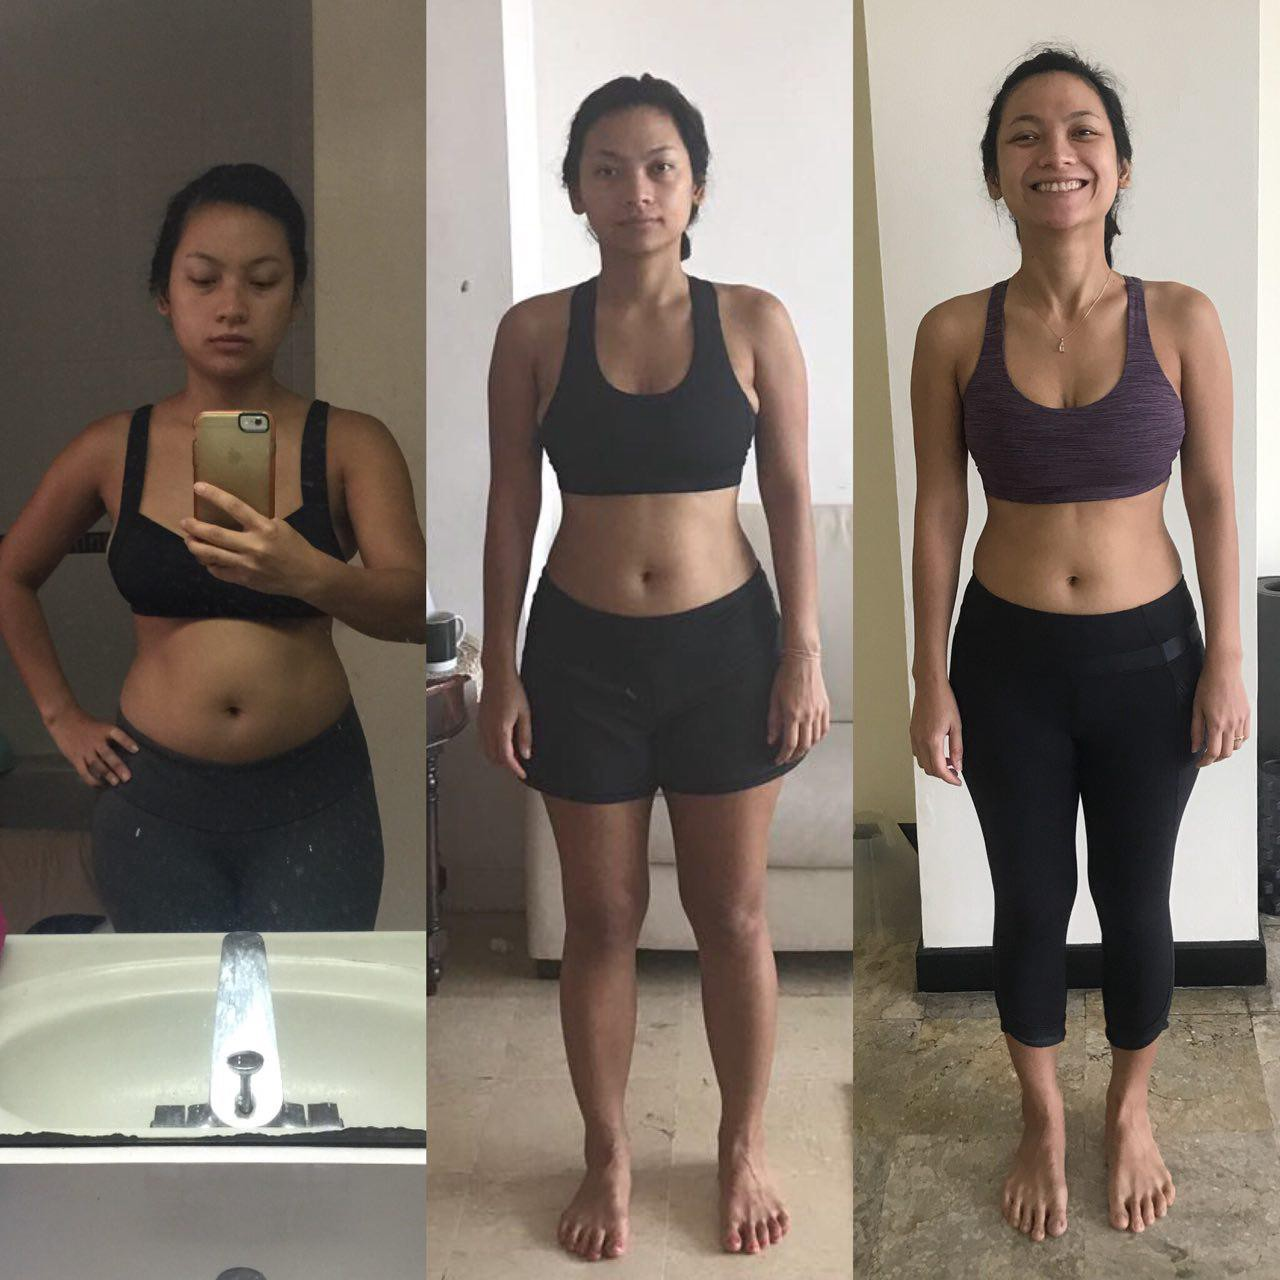 ba8522d358 Too Smart for My Own Good (or My Weight Loss Story Without Even ...